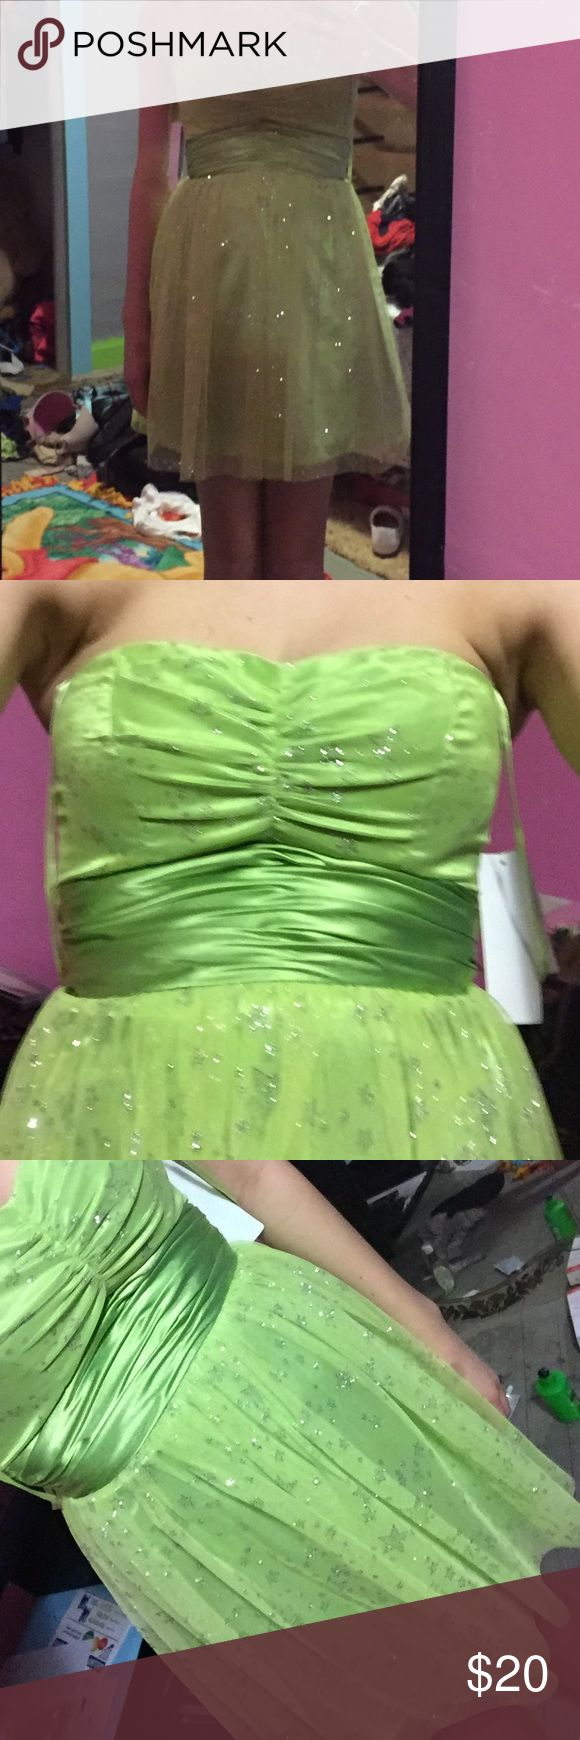 Lace bra under dress september 2019  best Halloween  images on Pinterest  Gown Prom dress and Bee